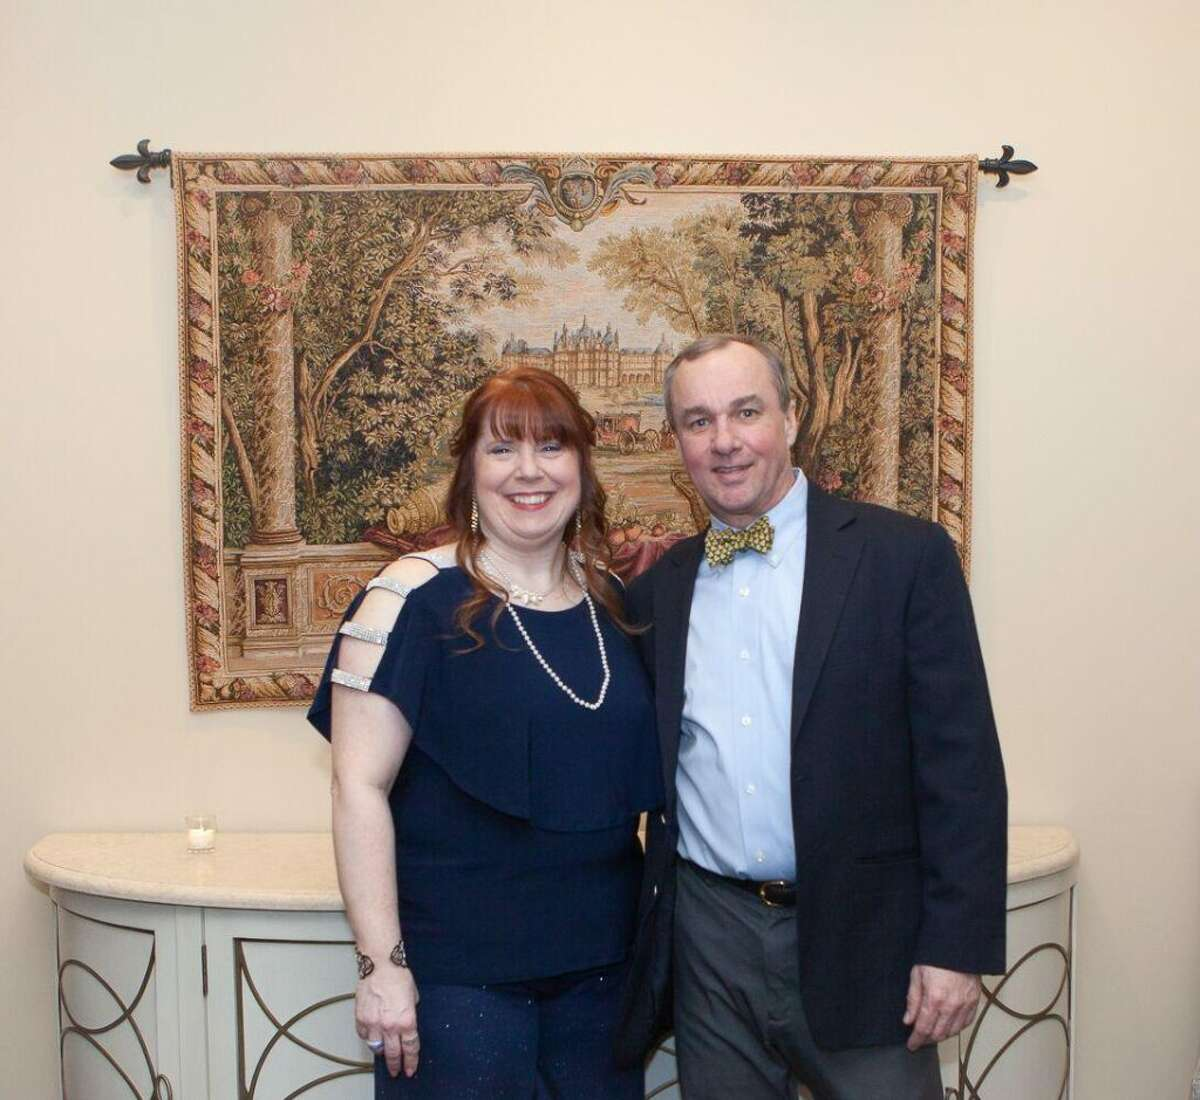 Ridgefield Operation for Animal Rescue (ROAR) honored Ridgefield-resident Scott Linke with its 2019 ROAR Community Star Award for his outstanding contributions and support at its annual ROAR gala and fundraiser. The event was held on March 9 at Le Chateau in South Salem, N.Y. Pictured from left to right: Kerry Dobson, executive director, ROAR and Scott Linke, ROAR volunteer and former board member.